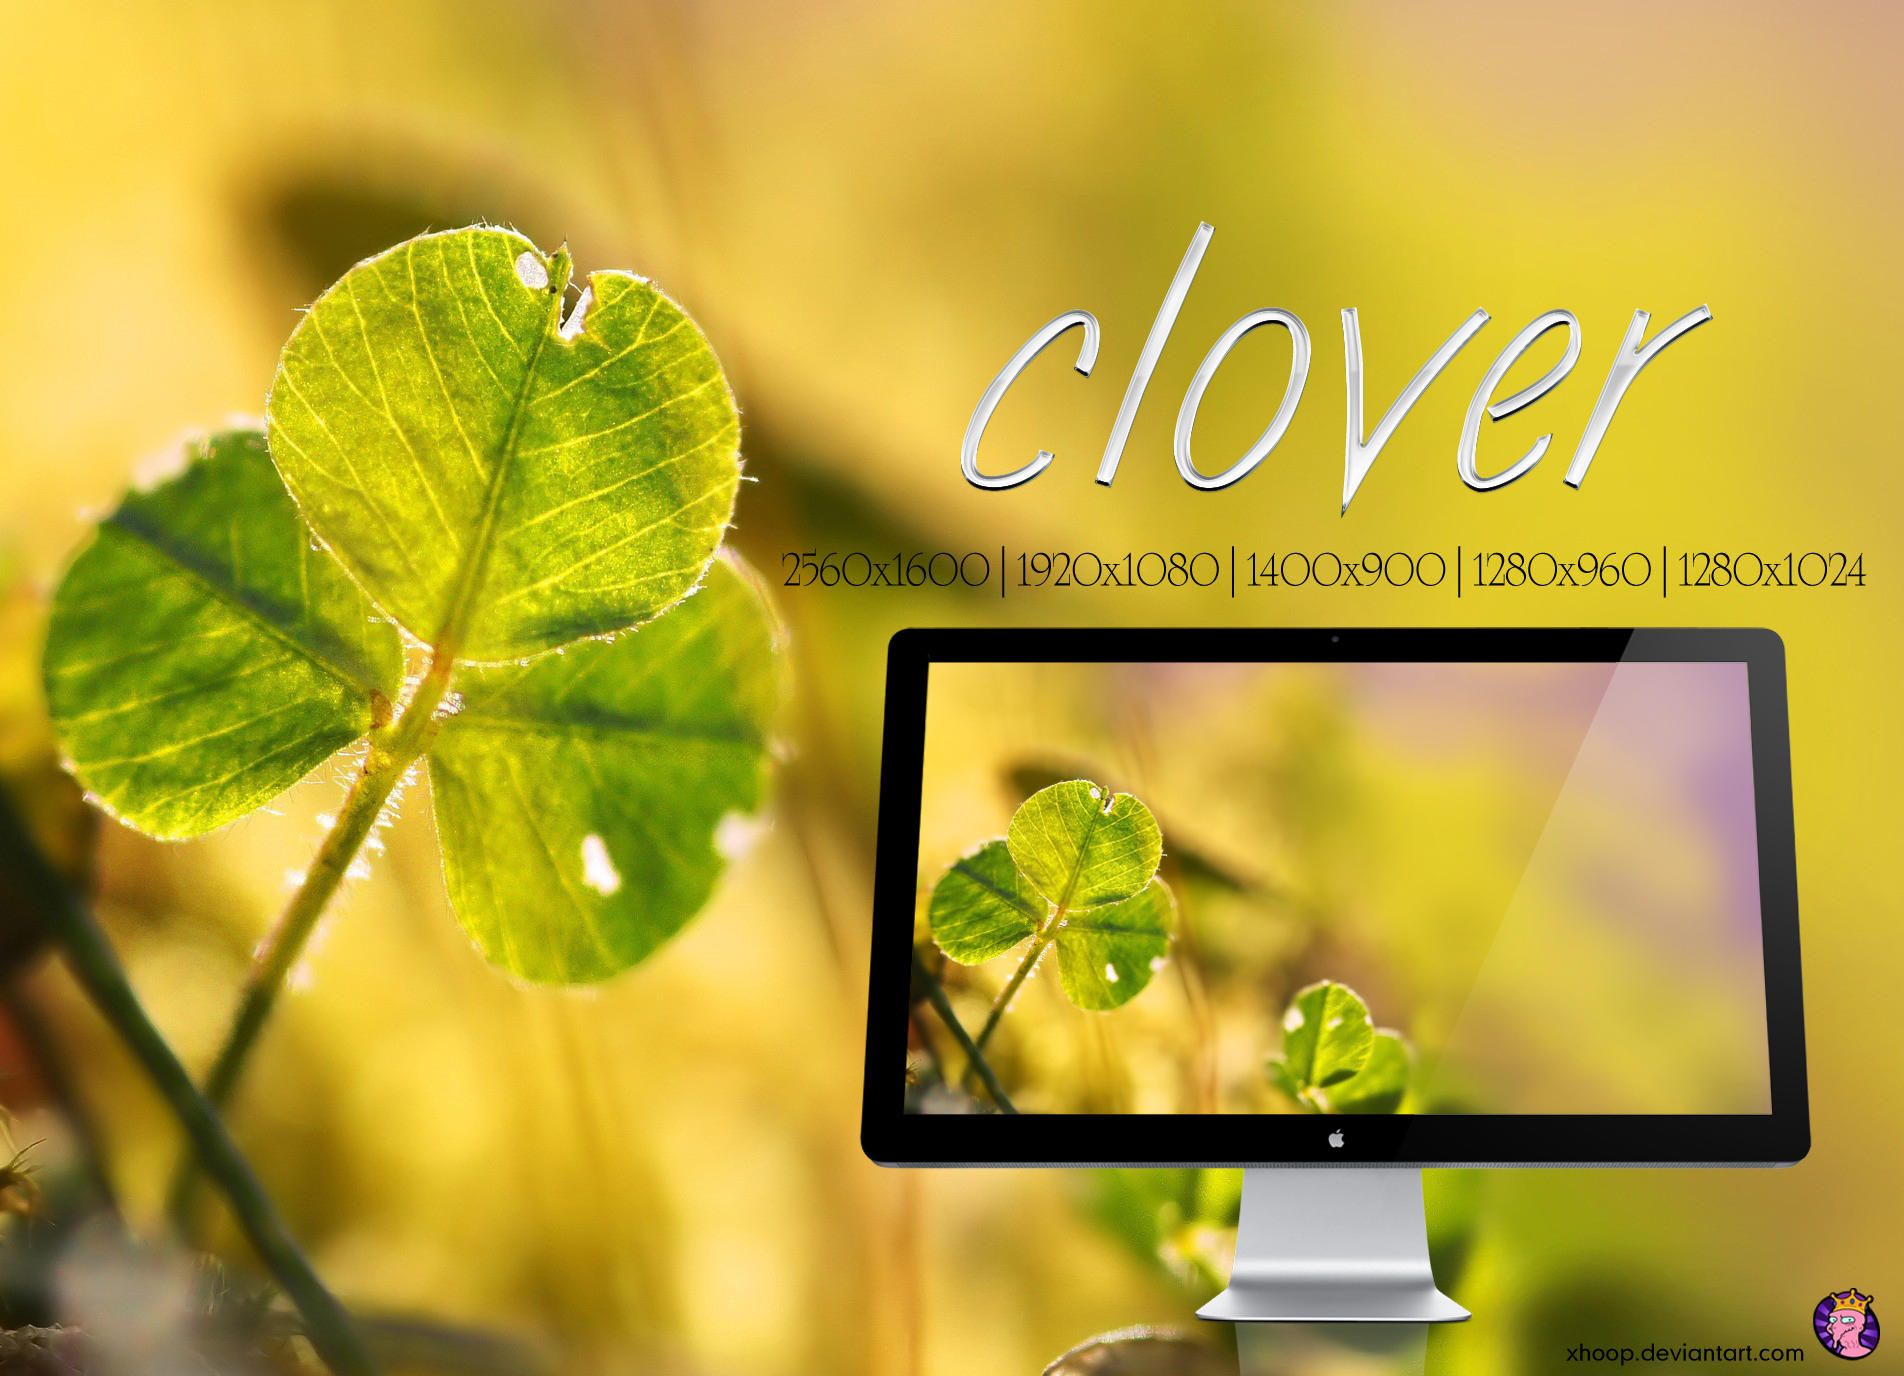 Clover wallpaper by xhoOp